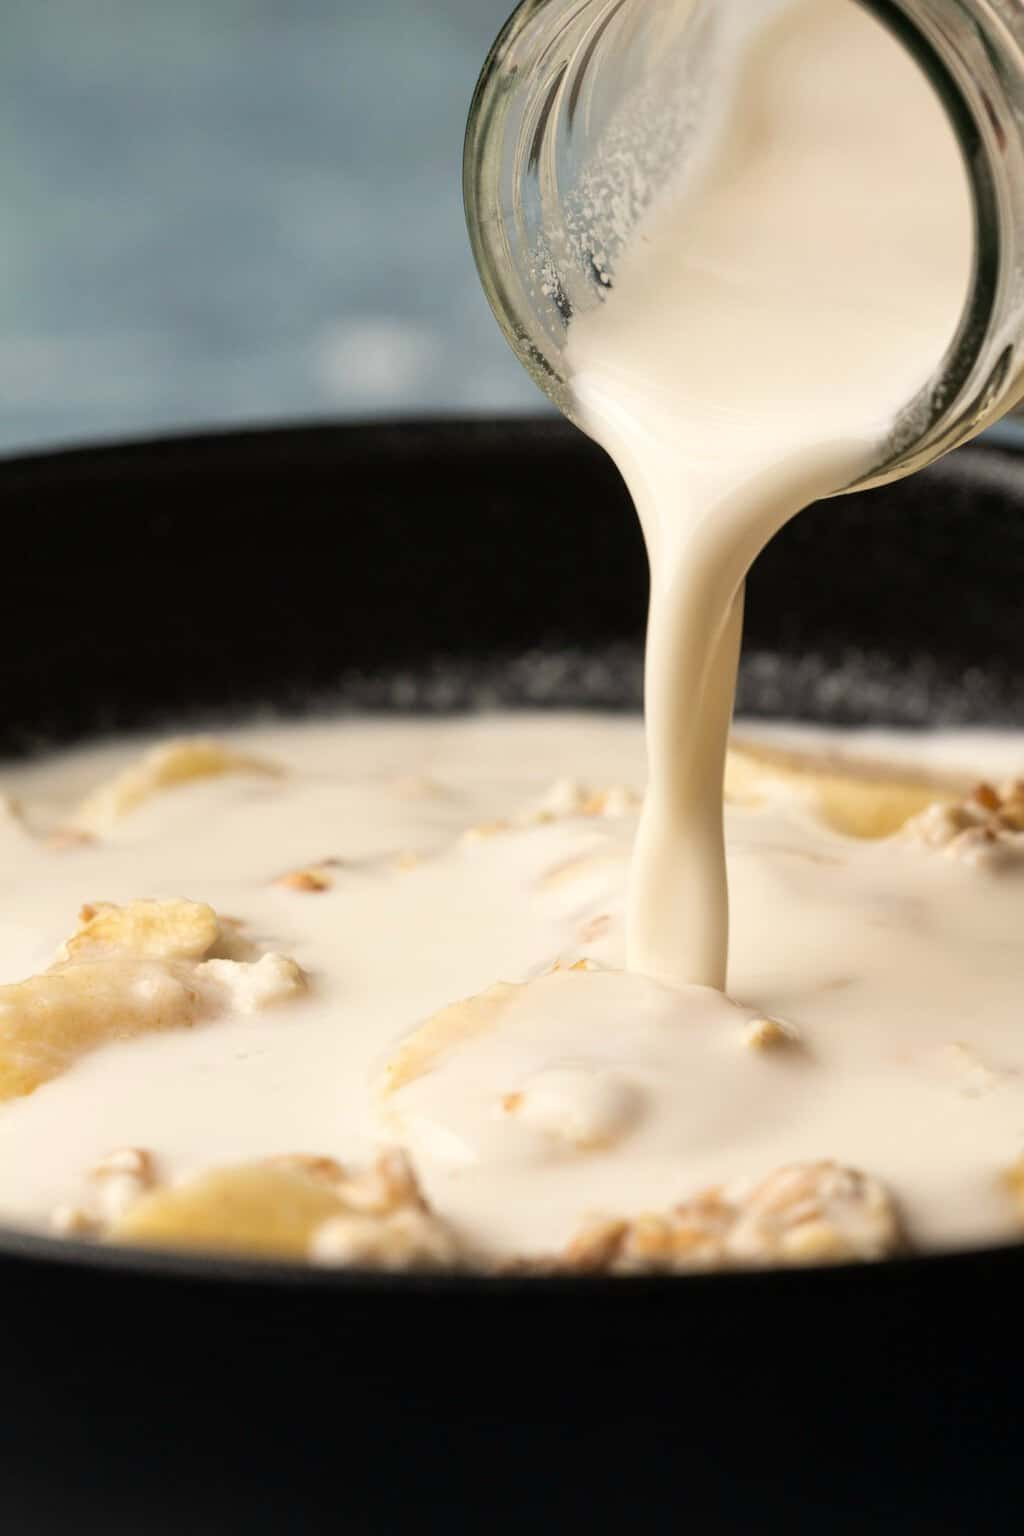 Cashew milk pouring over cereal and fruit.